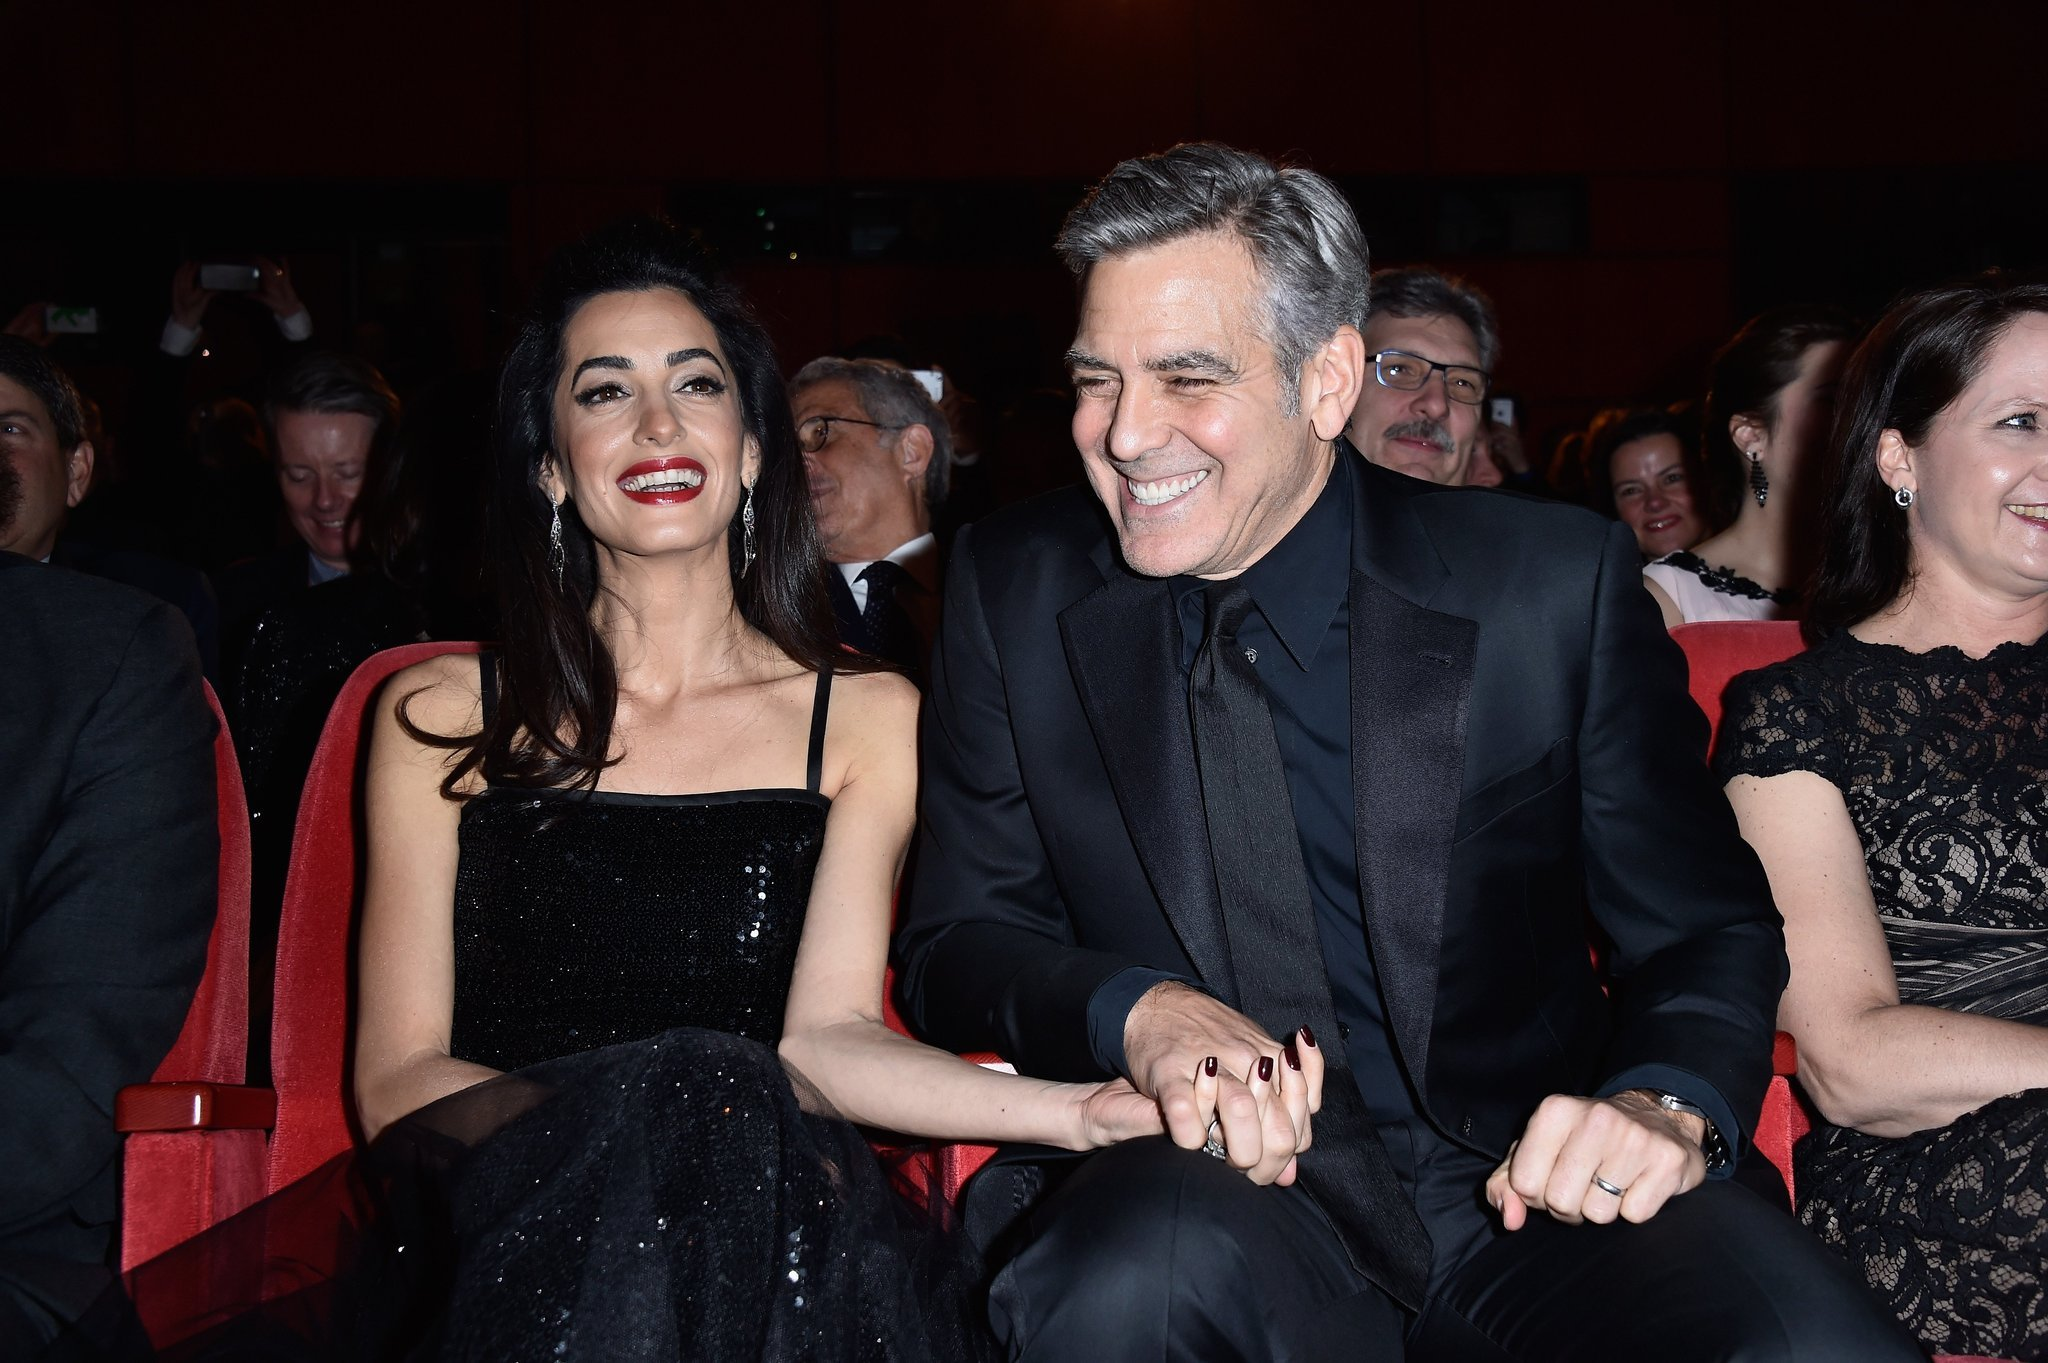 George Clooney's dad just revealed the cutest details about the twins